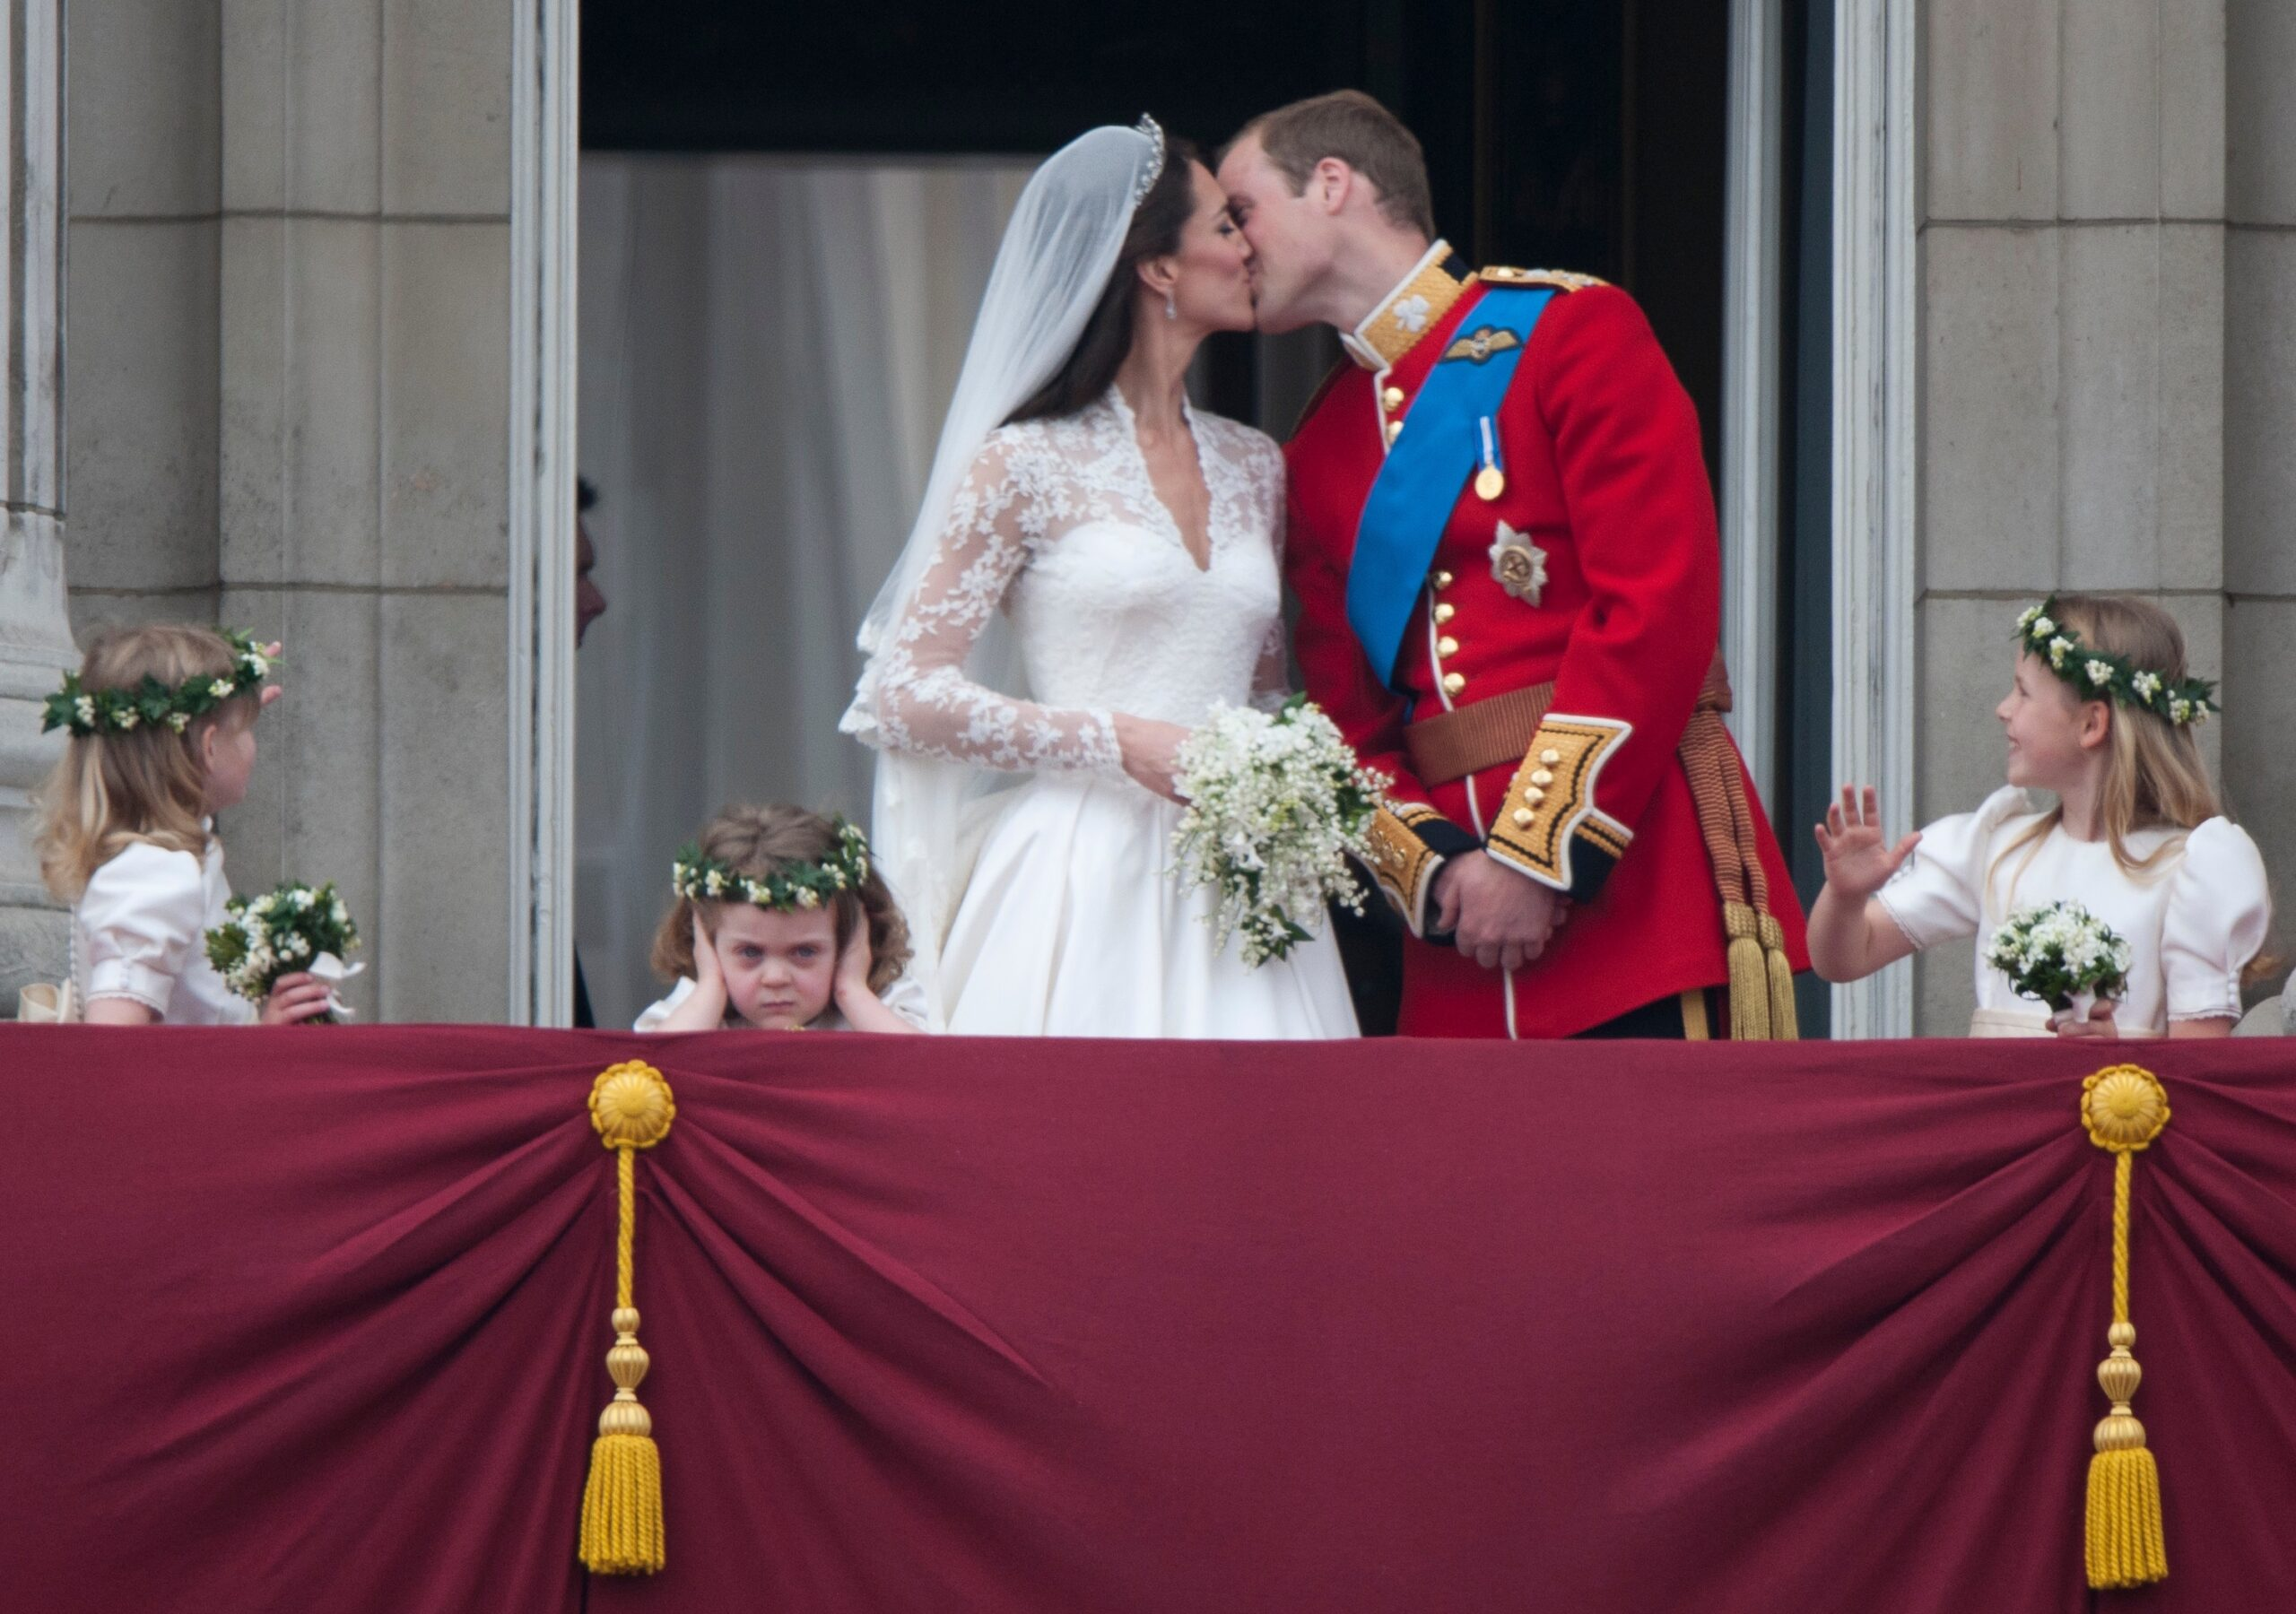 Prince William and his wife Kate Middleton, who has been given the title of The Duchess of Cambridge, on the balcony of Buckingham Palace, London with  bridesmaids Margarita Armstrong-Jones (right) and Grace Van Cutsem (middle) and Lady Louise (left), following their wedding at Westminster Abbey.